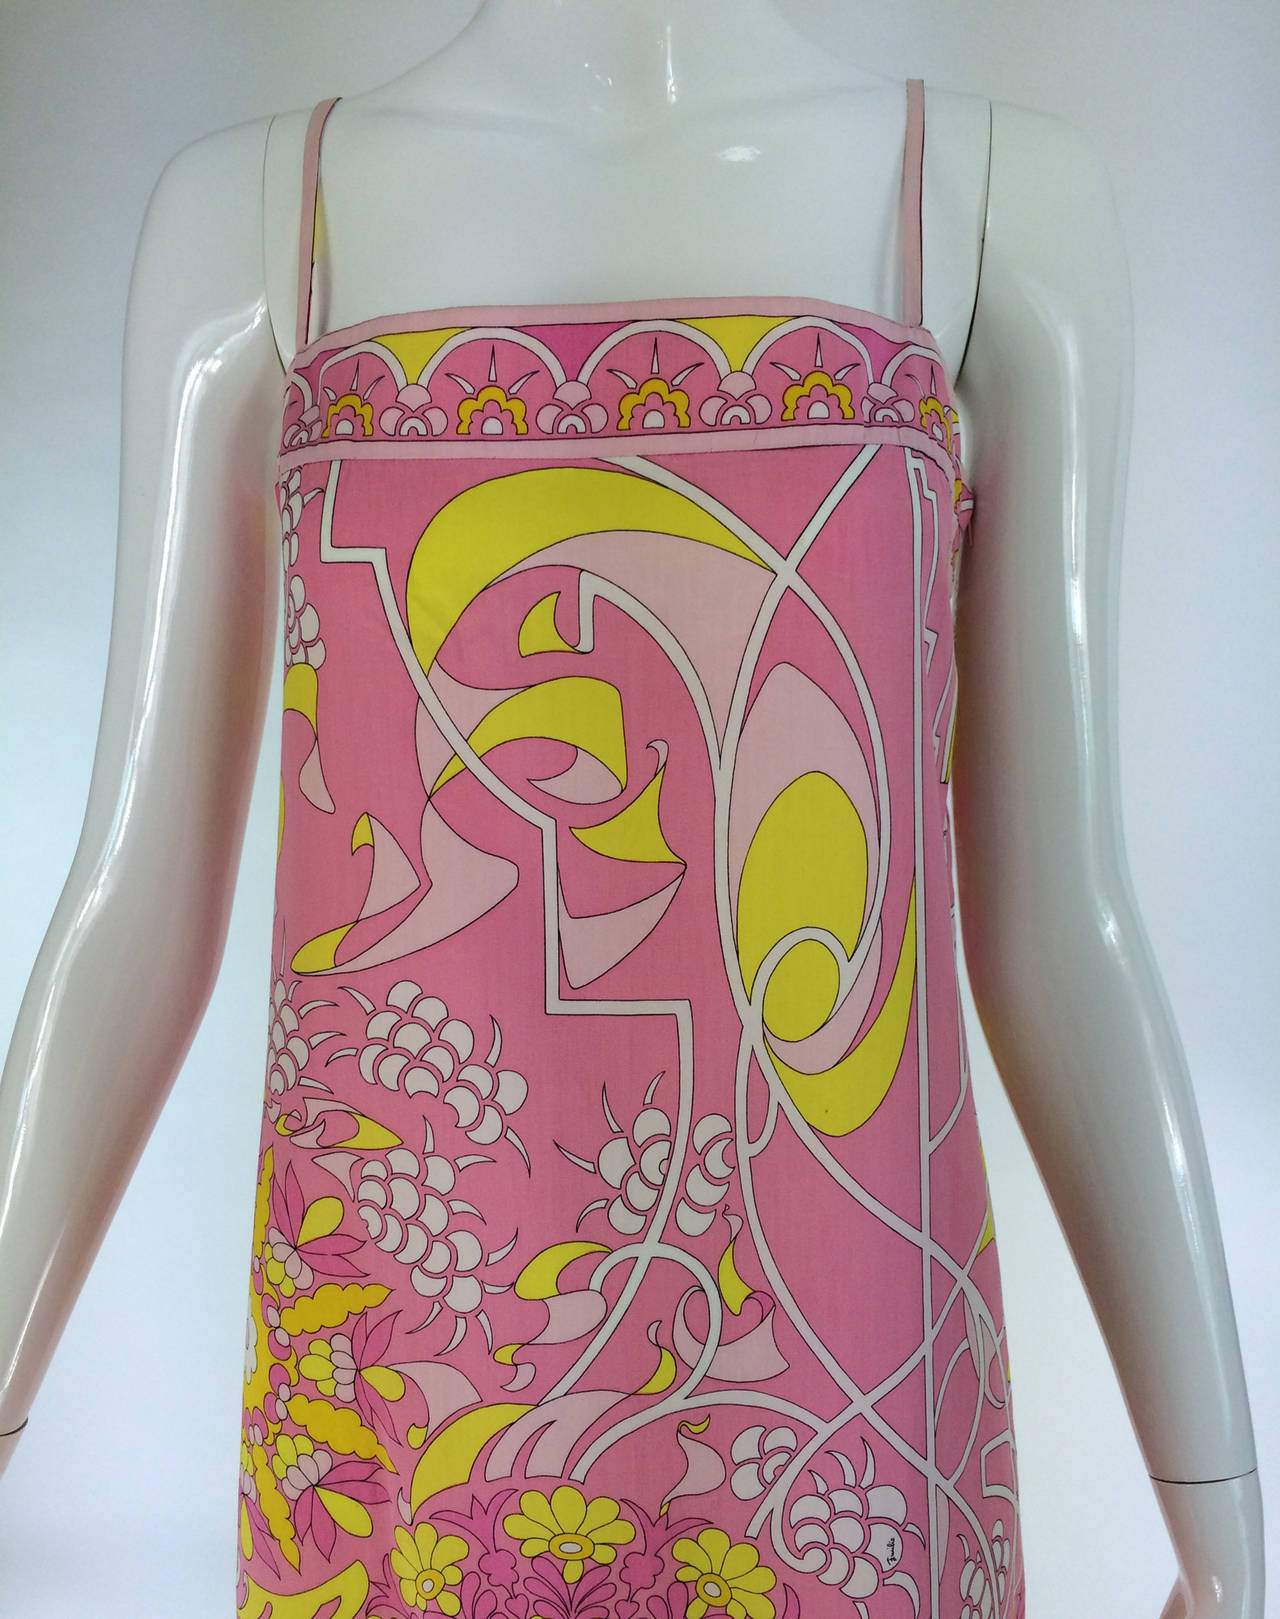 Emilio Pucci printed cotton maxi dress out of the ordinary design 1960s 2